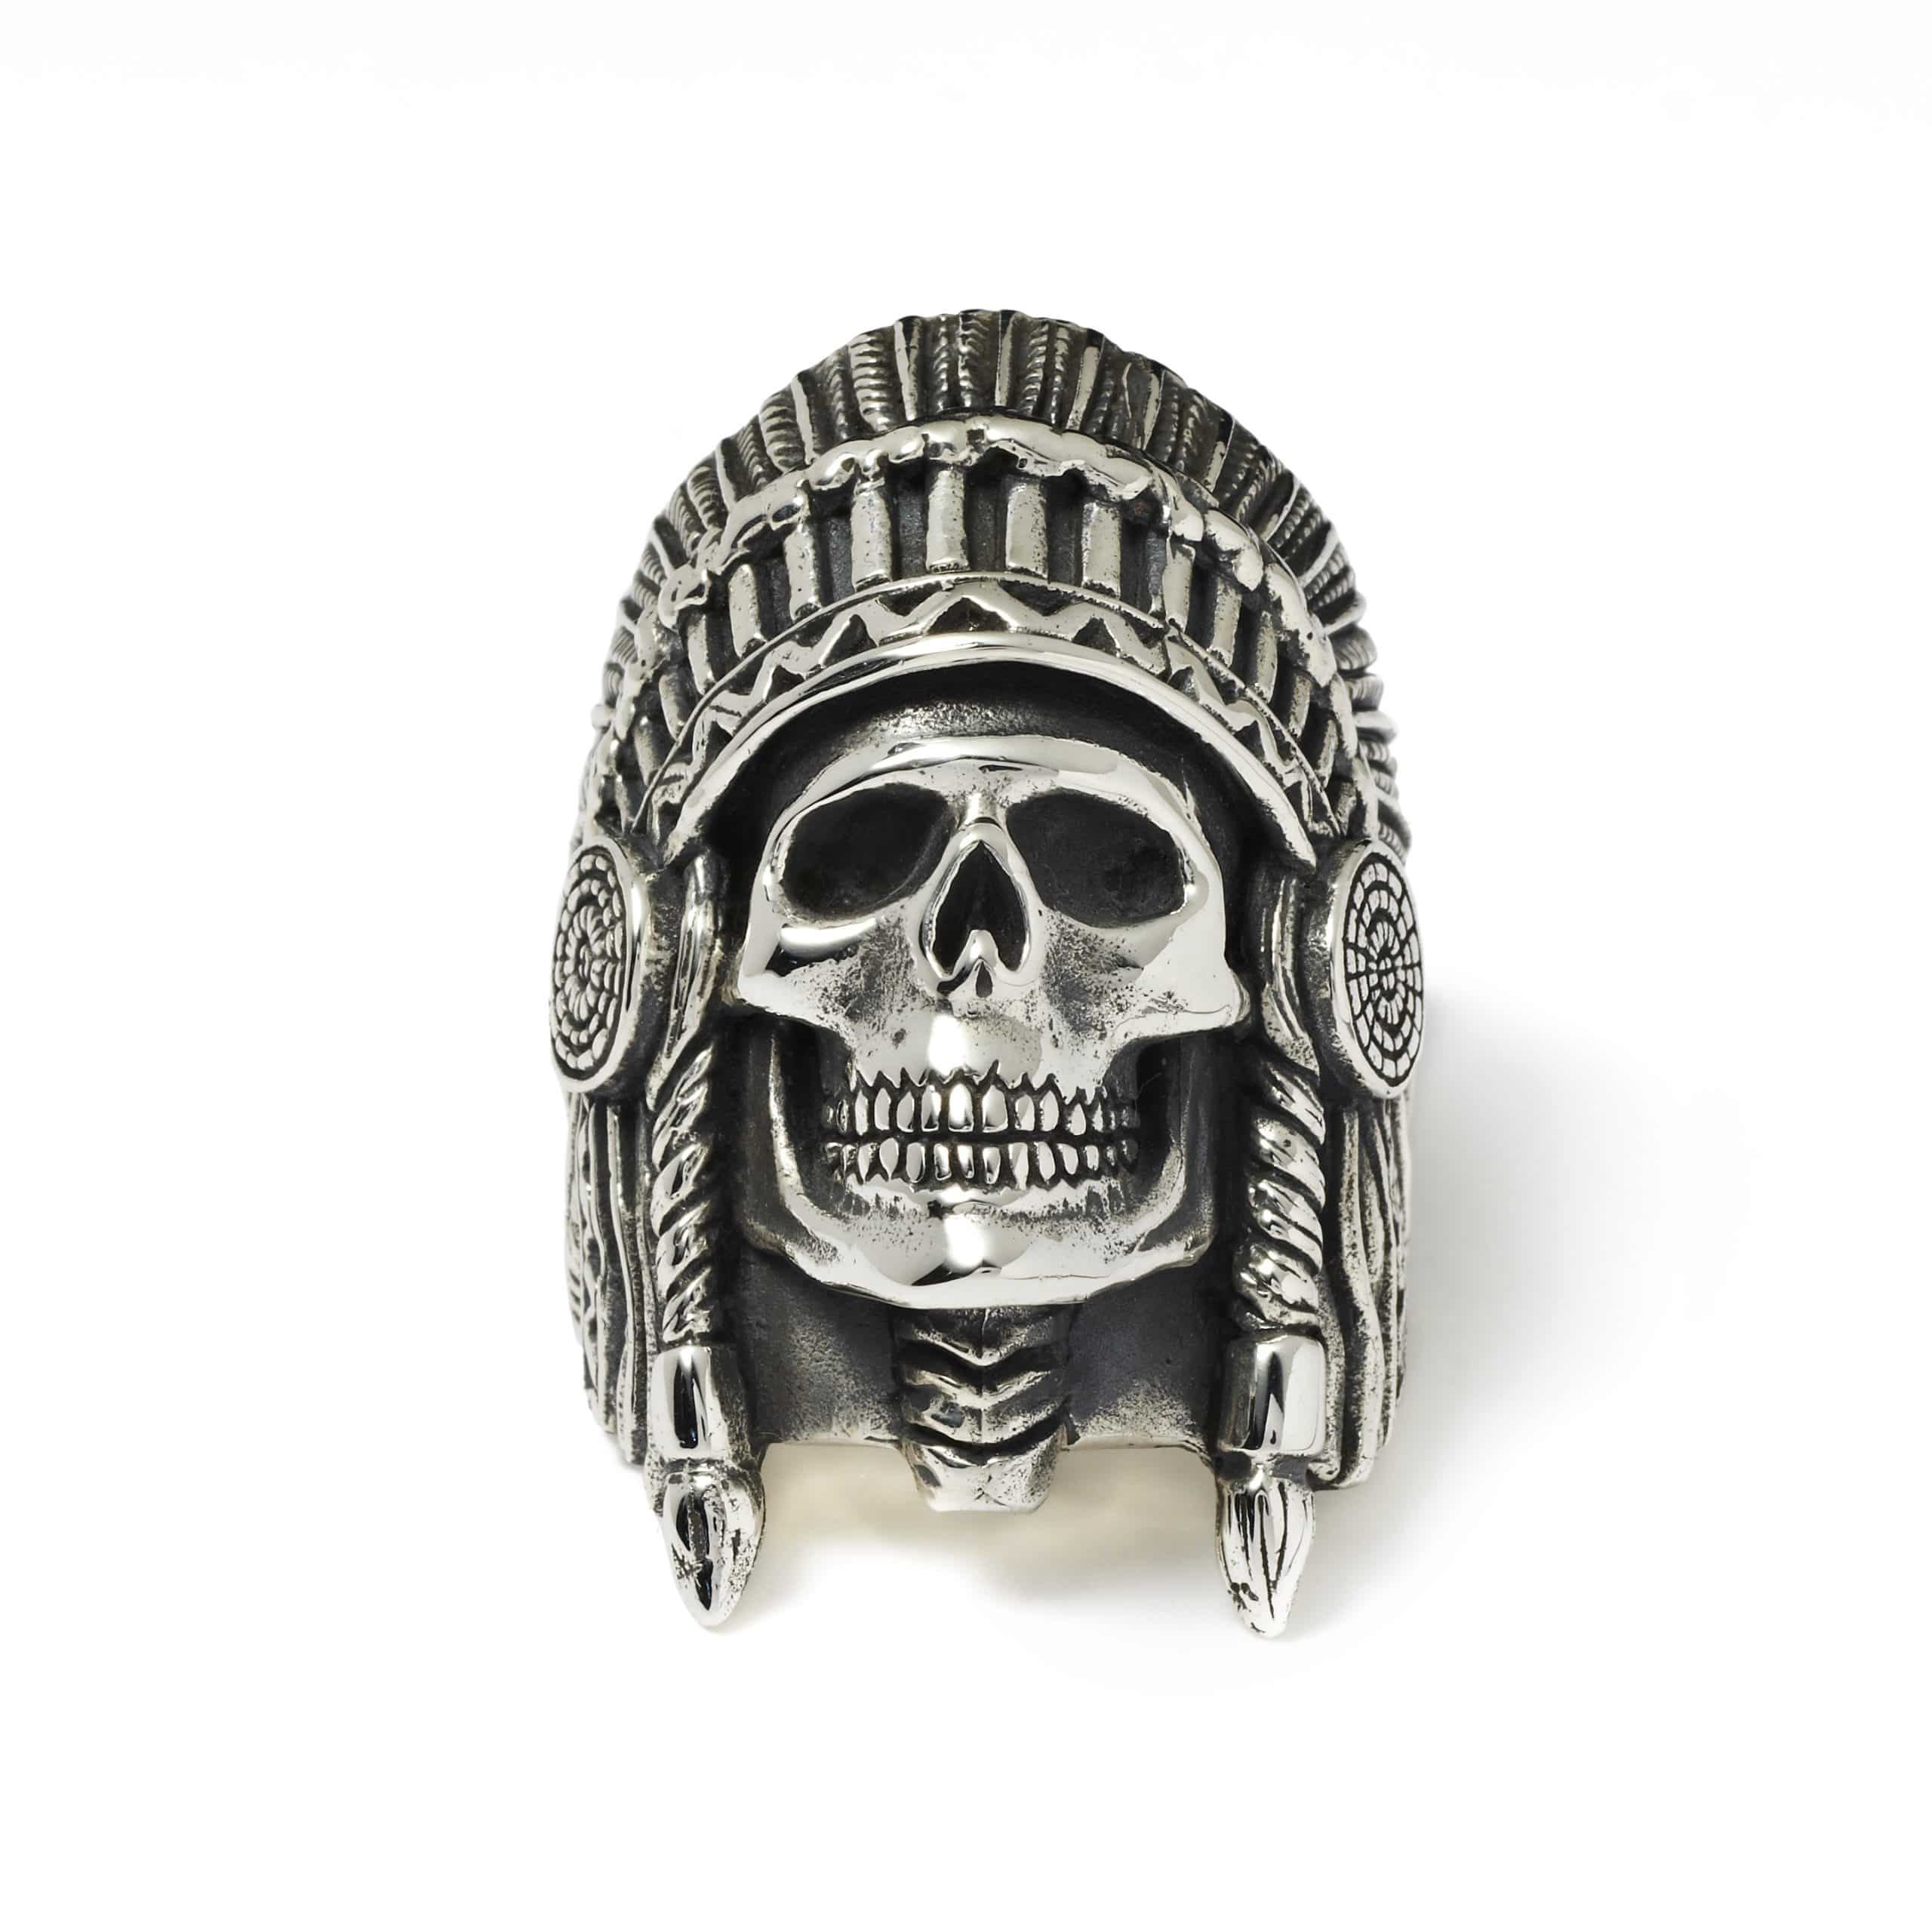 Wes Lang Indian Chief Ring The Great Frog